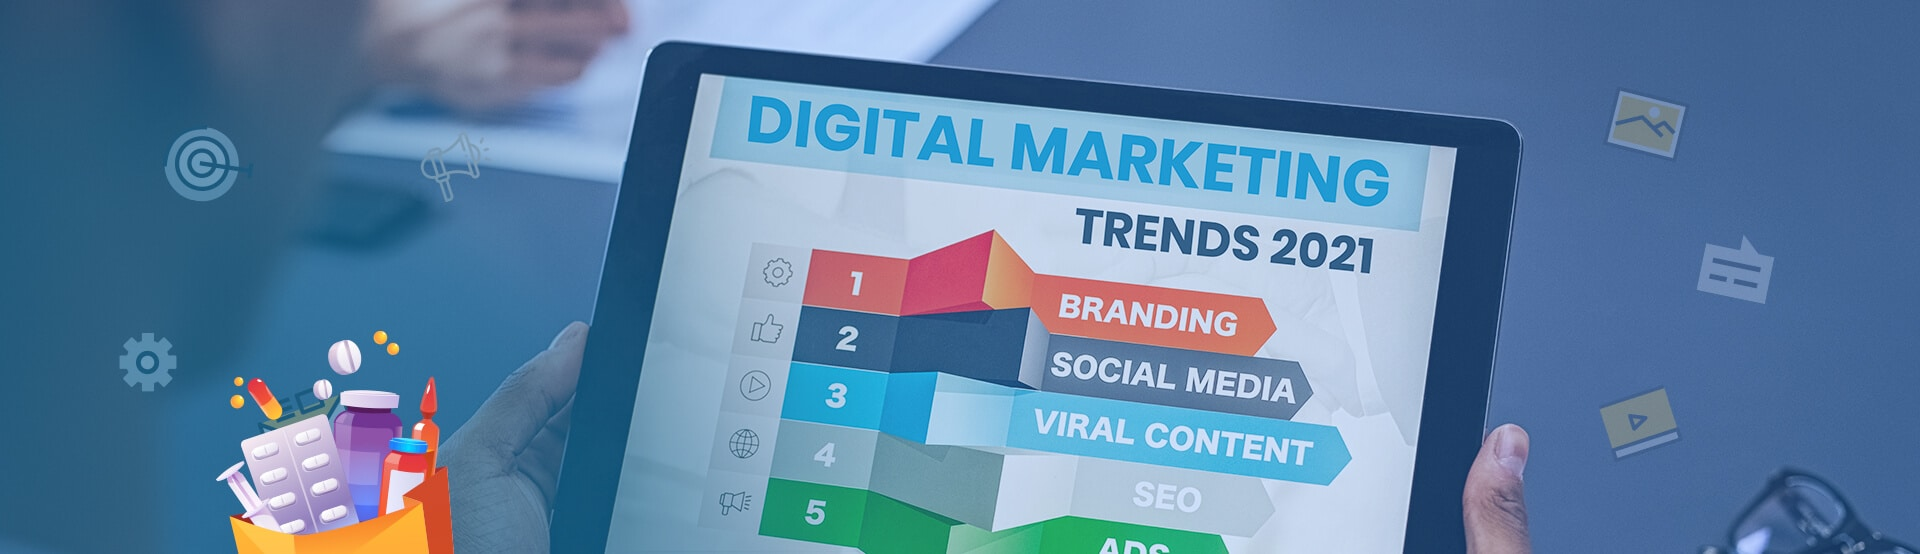 The Visible rank Digital-Marketing-Trends-2021